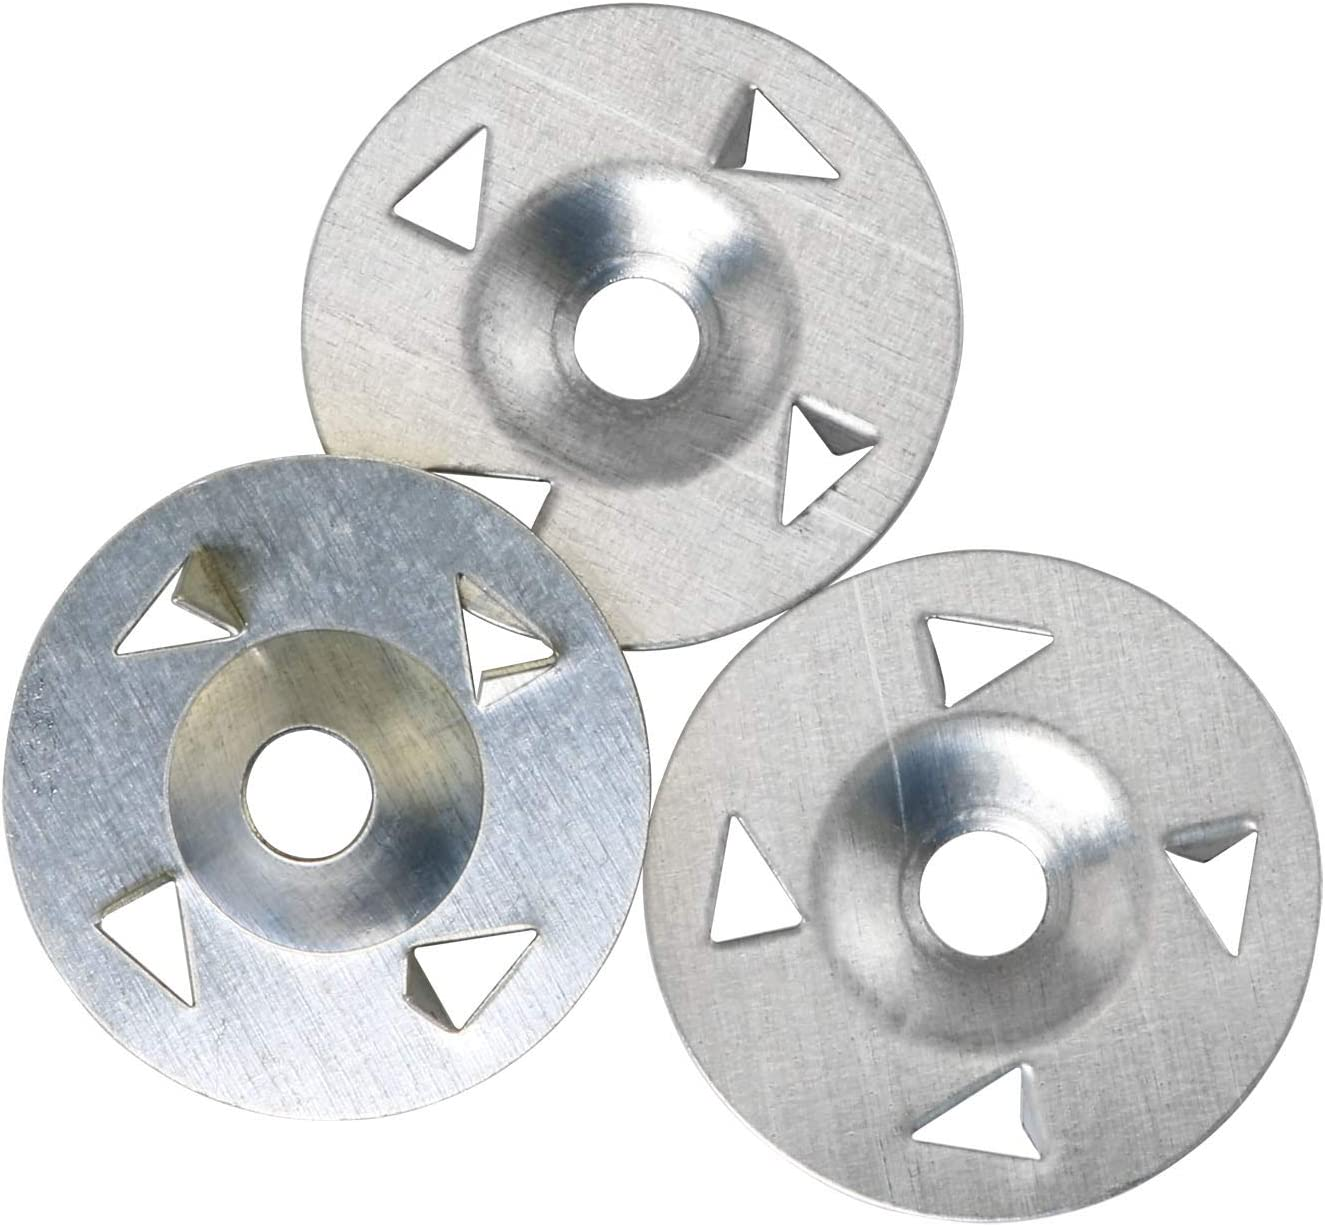 ToToT 50pcs 4-Claw Washer Composite Plate Fixed Nail 28mm for Gypsum Board, Extruded Plate, Foam Board, Rock Wool Board